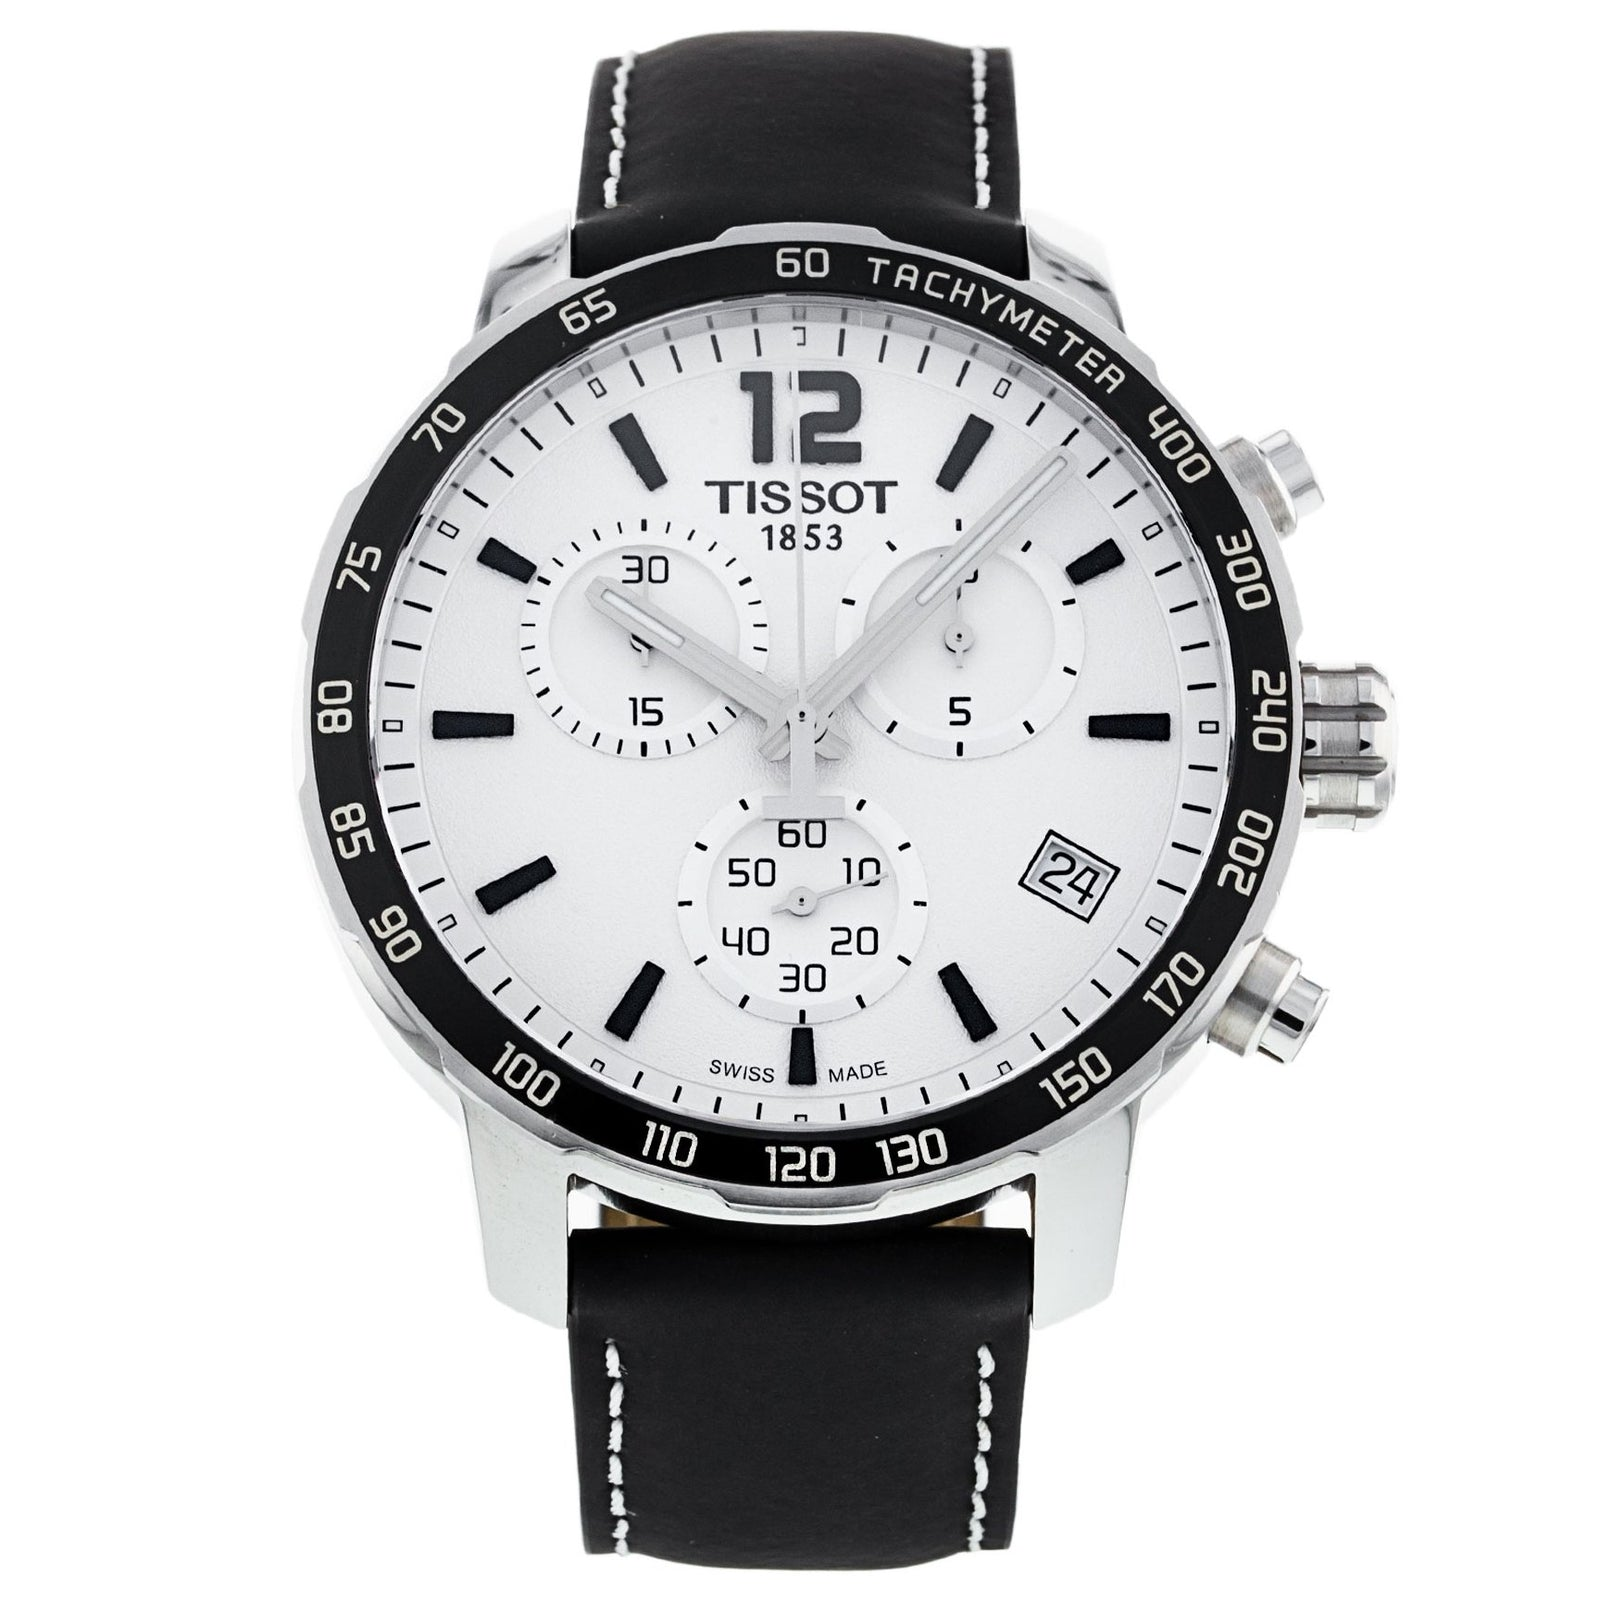 Men's Quickster Leather Chronograph Tissot Watch T095.417.16.037.00